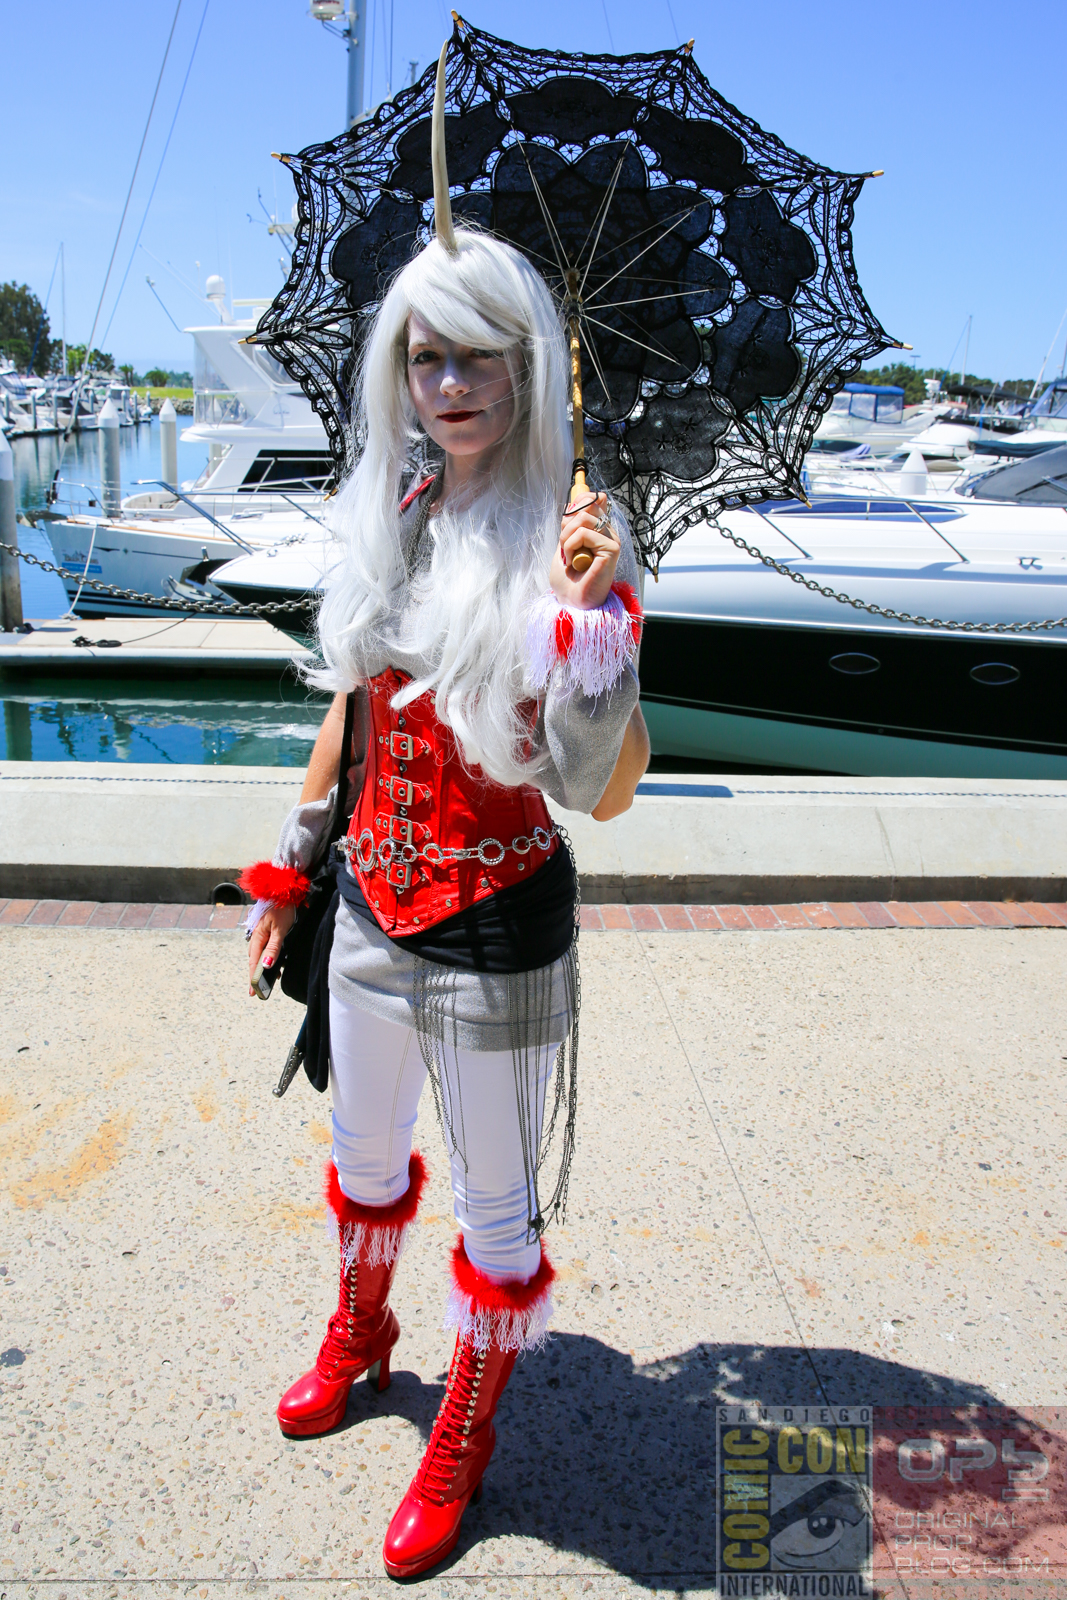 San-Diego-Comic-Con-2014-SDCC-Photos-Photography-Costumes-Cosplay-Exhibit-Hall-Masquerade-Images-High-Resolution-002